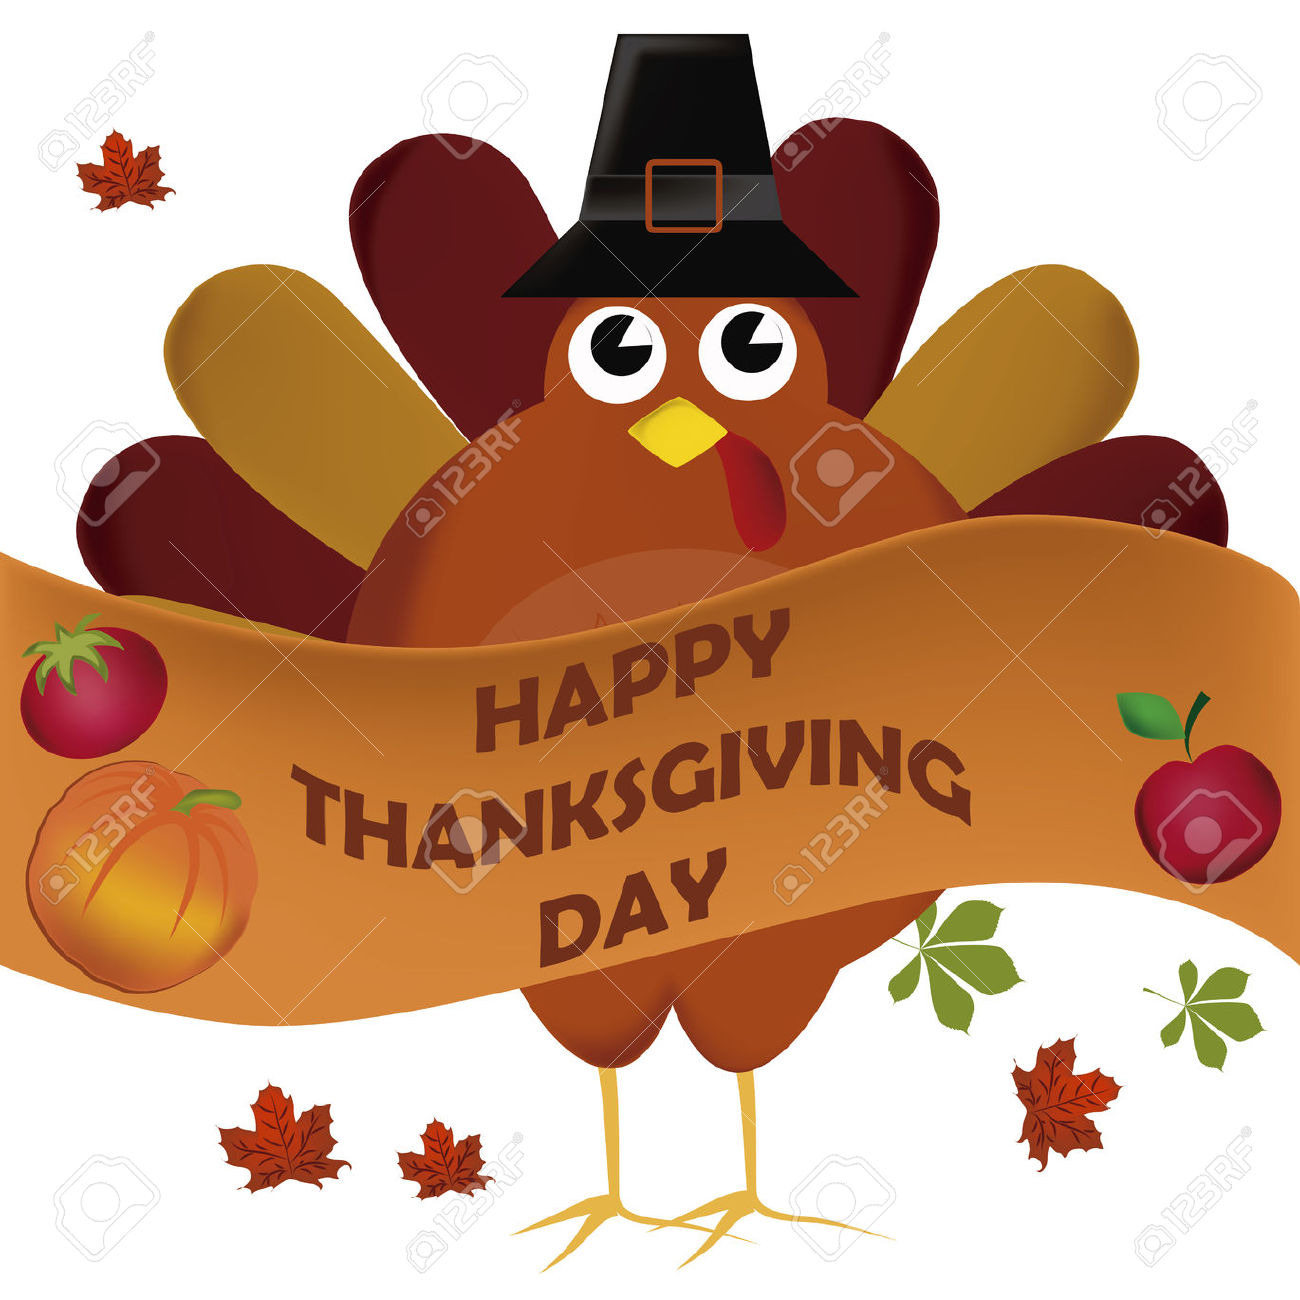 25 thanksgiving day images and pictures happy